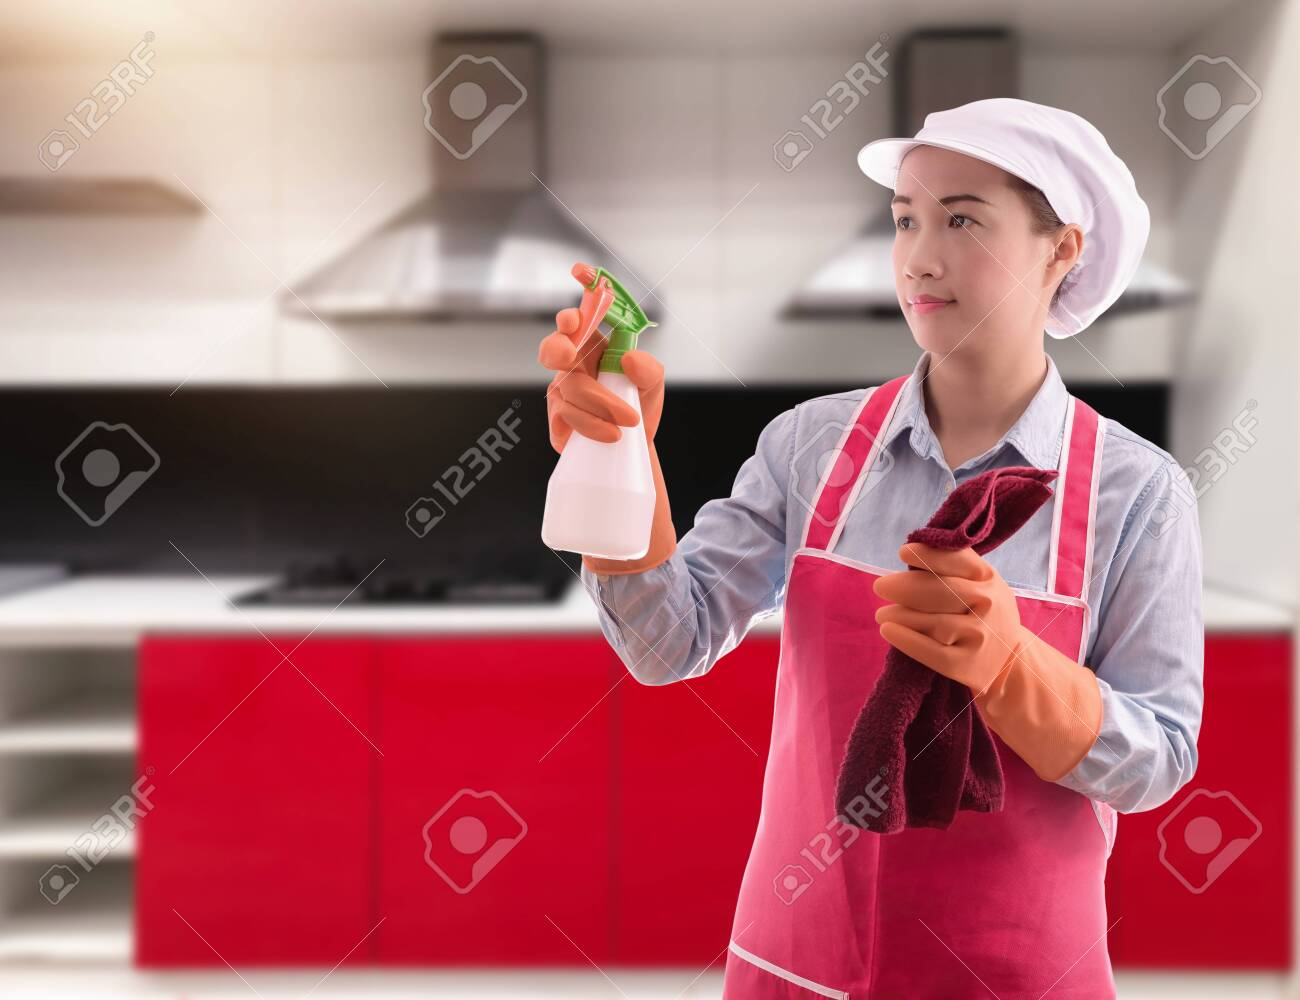 Cleaning concept Woman with washing fluids and rags in hands and cleaning equipment ready to clean house on blurred kitchen background - 149184547